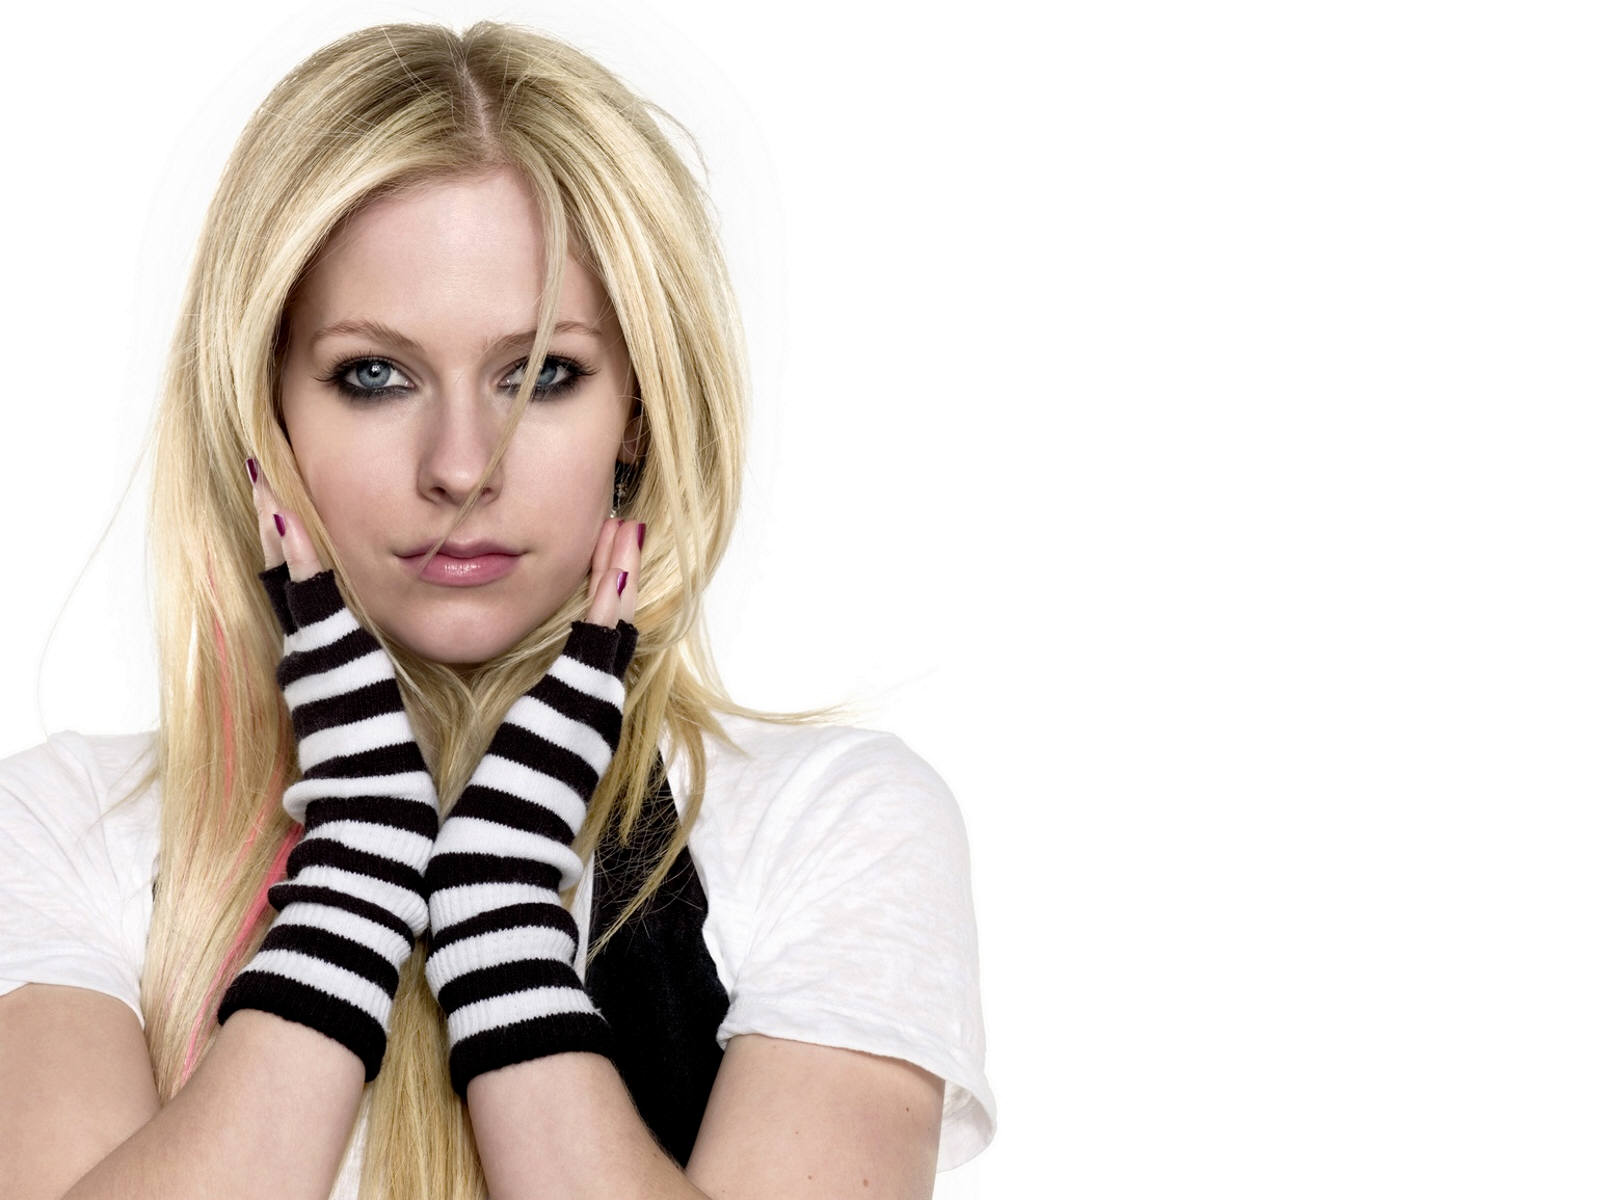 http://3.bp.blogspot.com/-qJY-4Uho7oY/TmGwbZ64pQI/AAAAAAAAAmM/Skh9NixPpZY/s1600/Avril+Lavigne+Hot+Pictures+%252815%2529.jpg